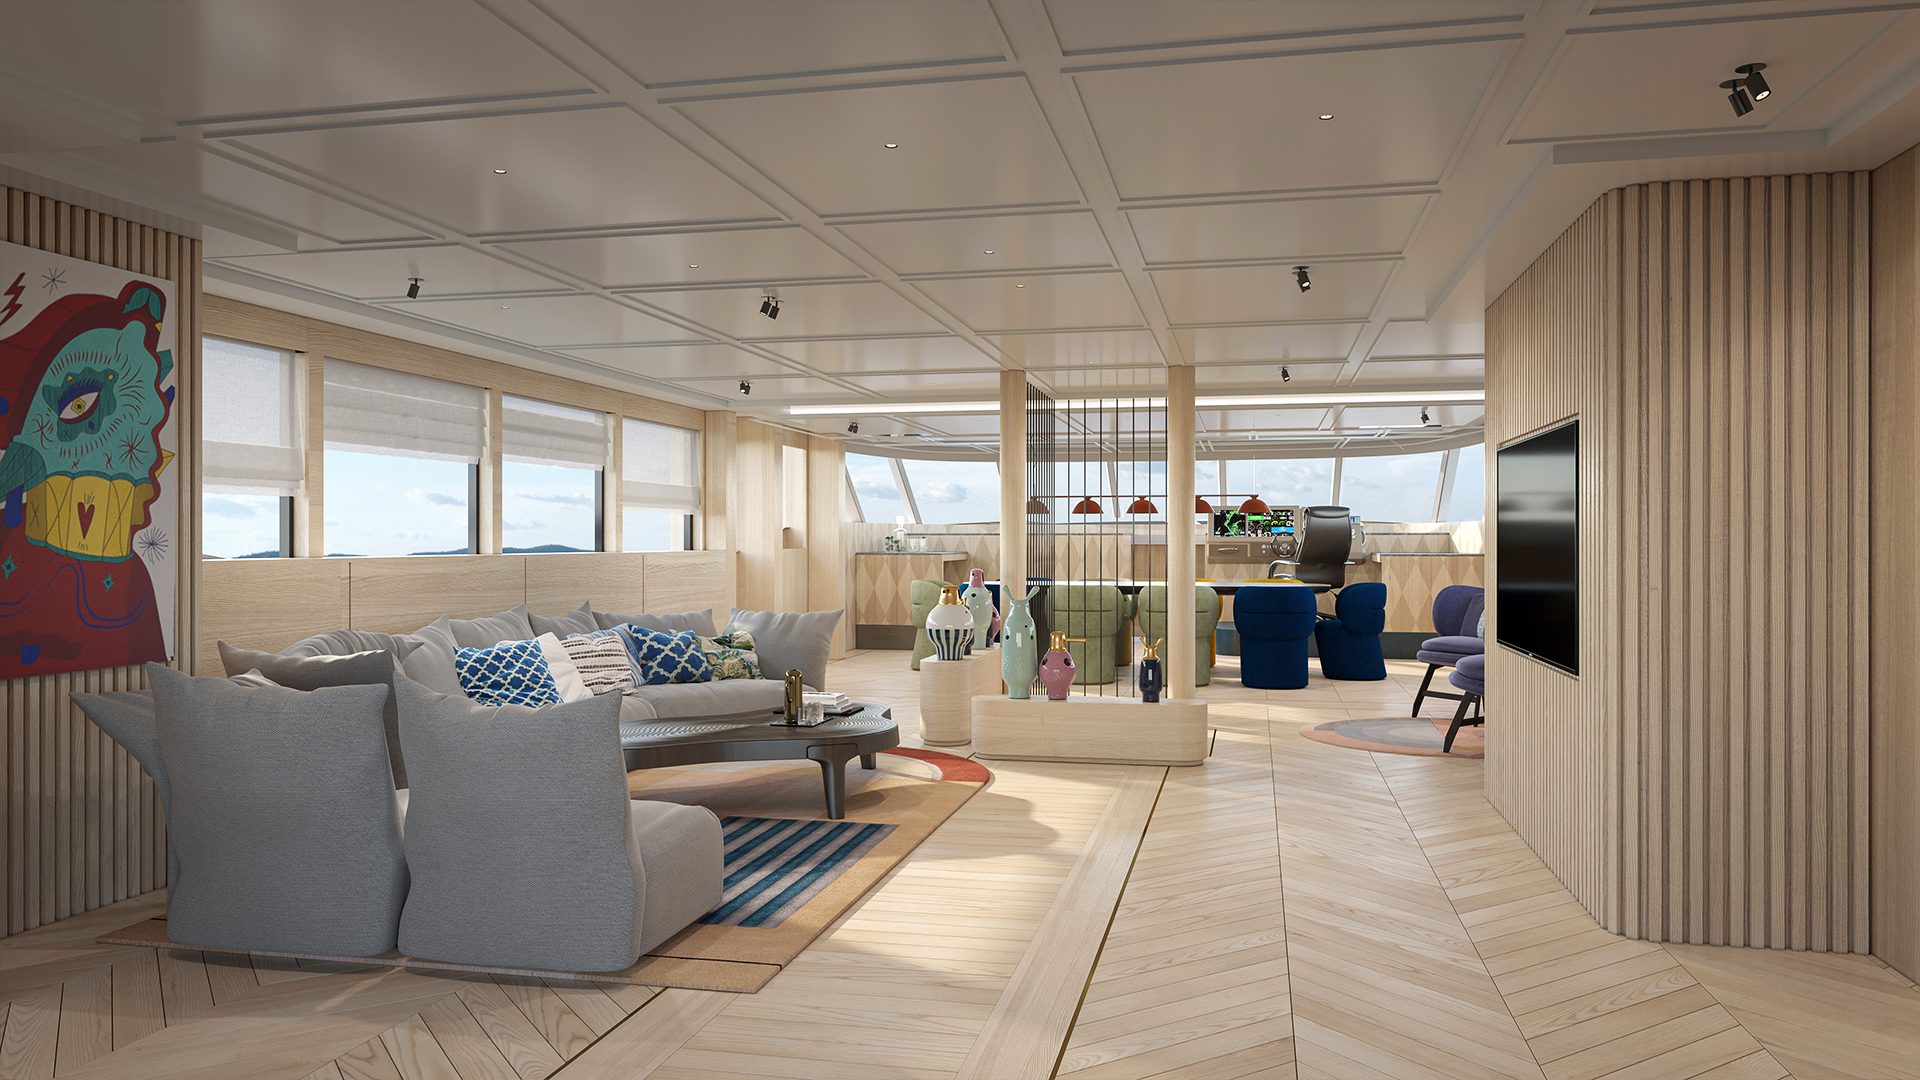 Maayan-Golan_Architectural-Visualization_interior-visualization_yacht-design_living-room_design-by-rust_06